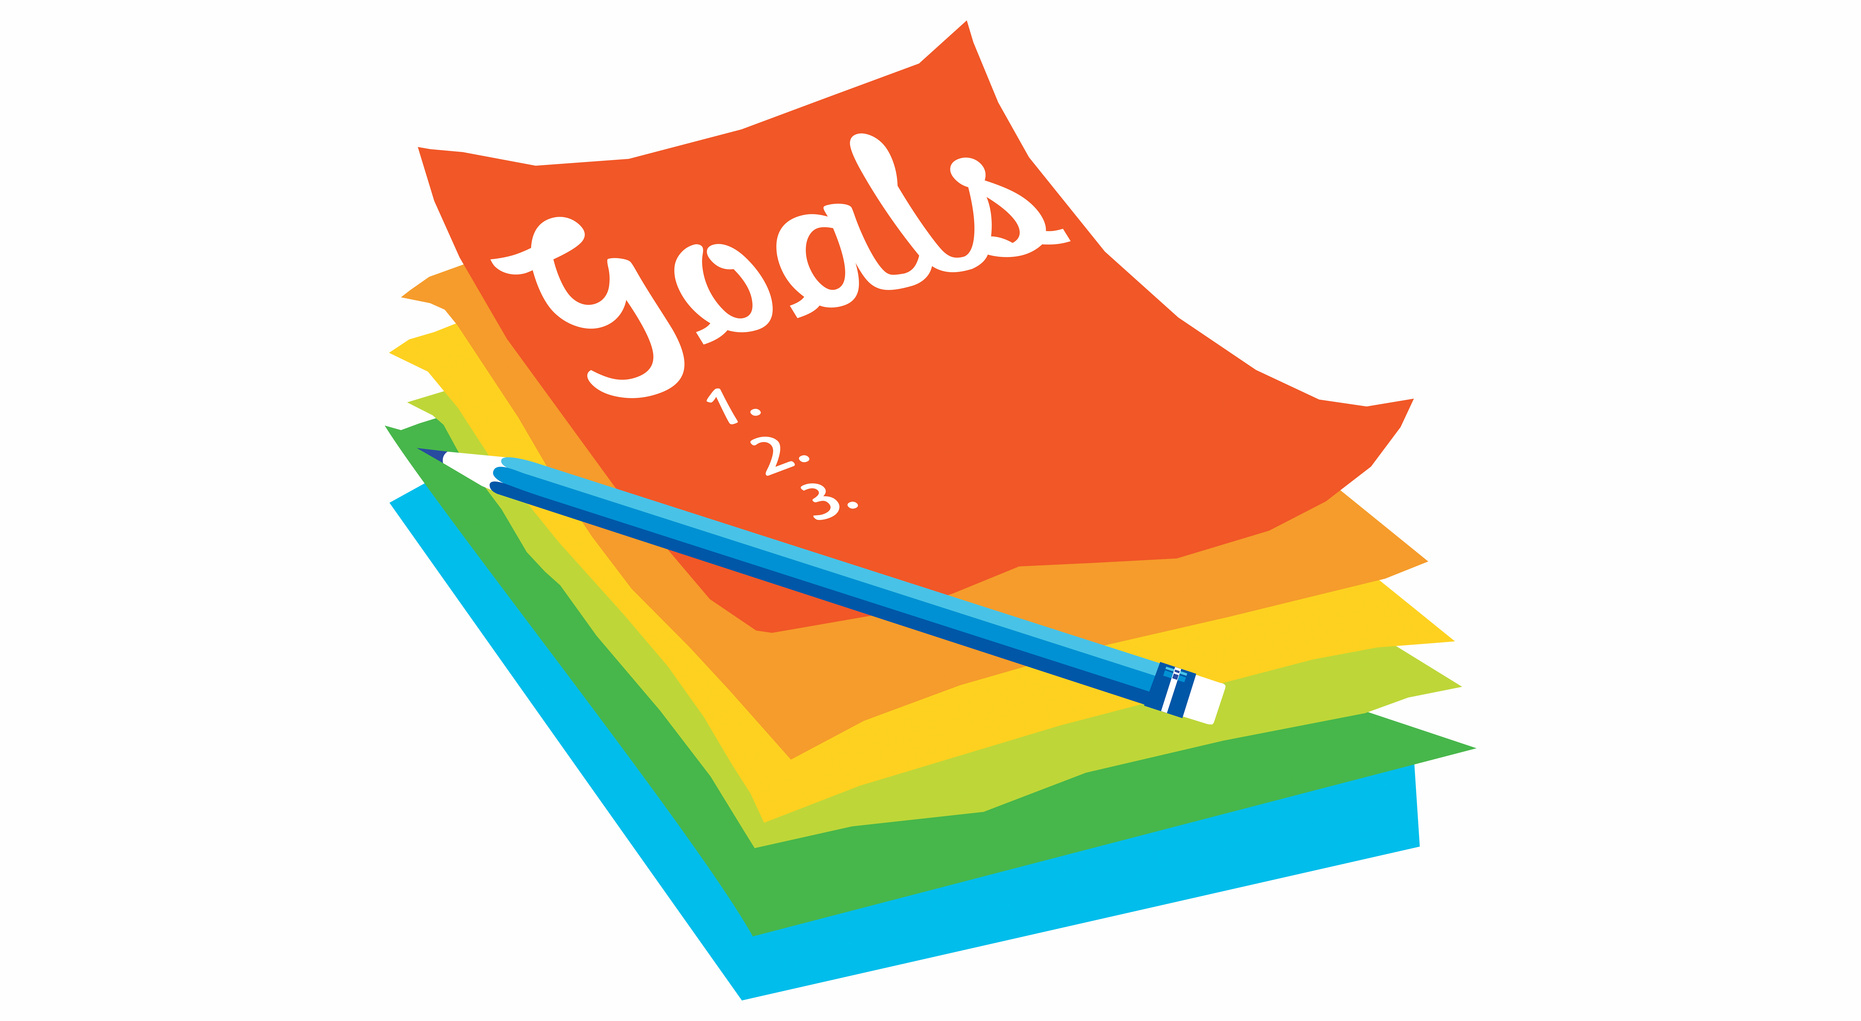 Goal clipart academic goal. The sizzle and fizzle